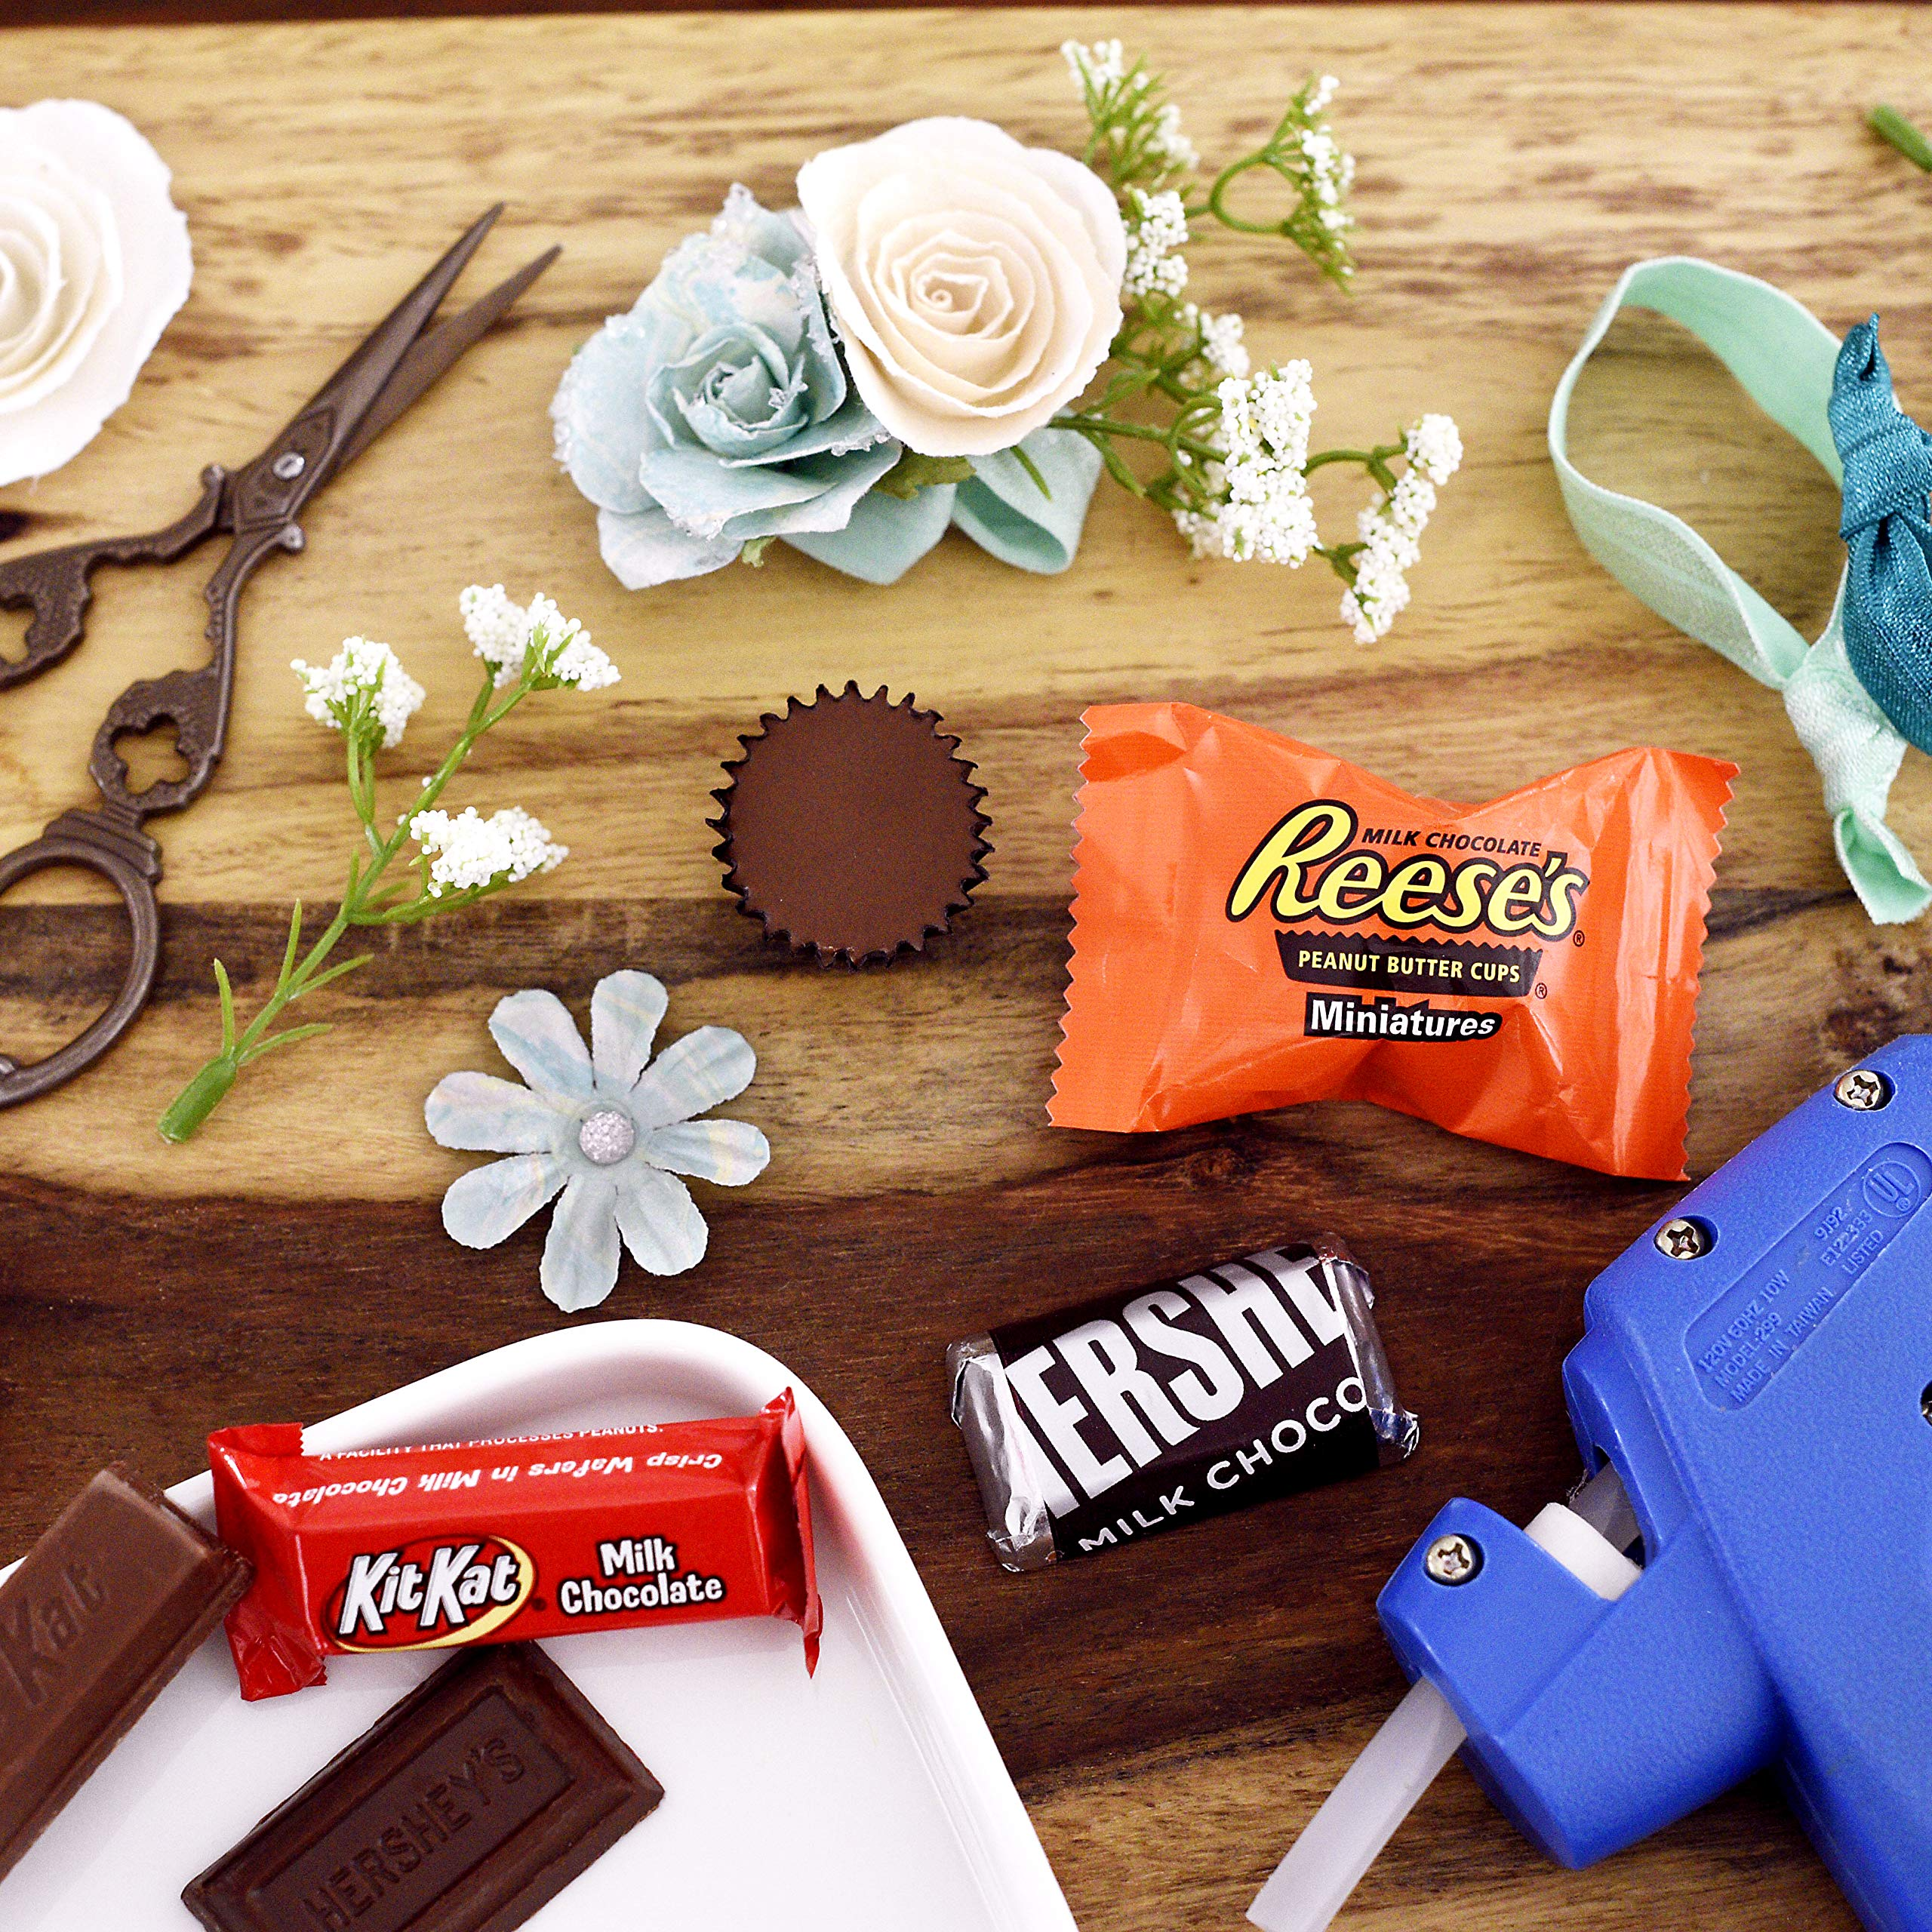 HERSHEY'S 5 Pound Candy Assortment, Bulk Chocolate Candy , HERSHEY'S, REESE'S, and KIT KAT, 265 Pieces by HERSHEY'S (Image #3)